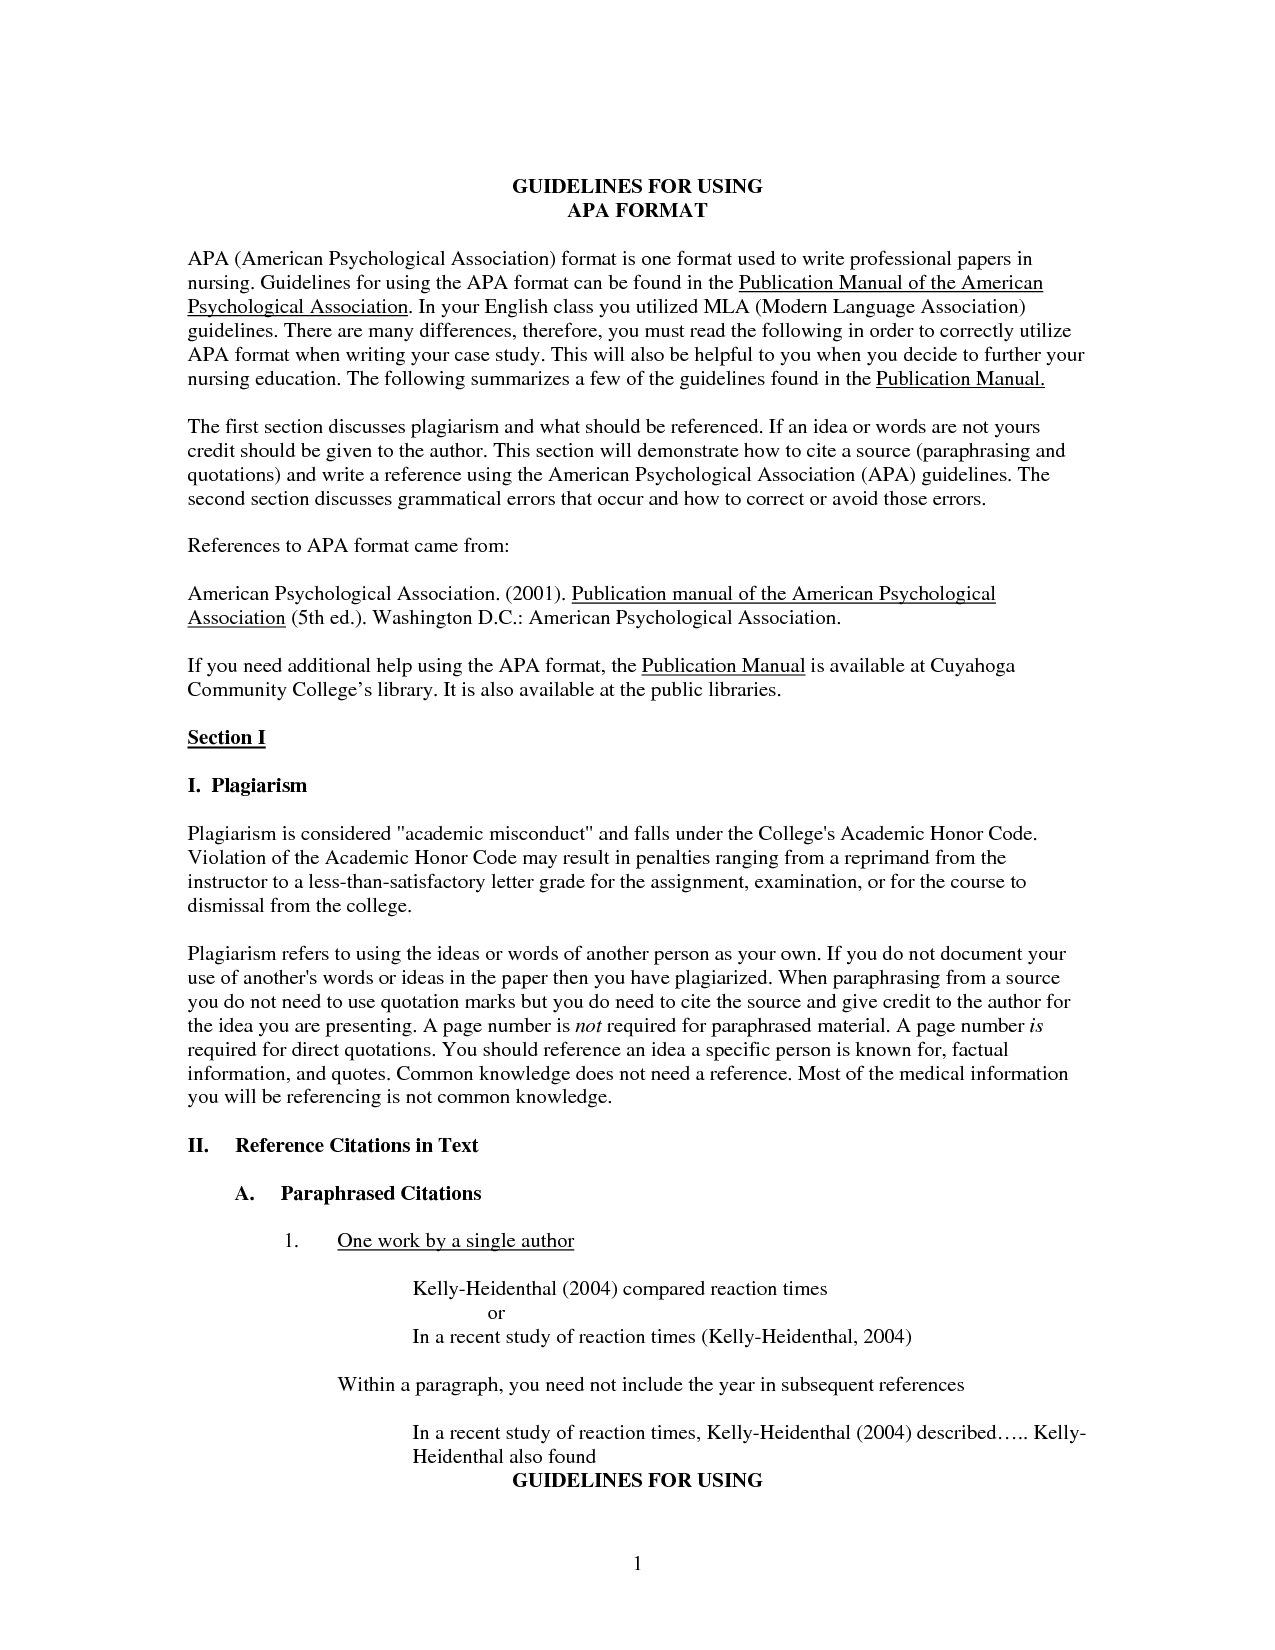 016 How To Cite In Researchr Apa Style Brilliant Ideas Of Format Example Doc Using Fancy Essay Fearsome A Research Paper Write Bibliography For Full